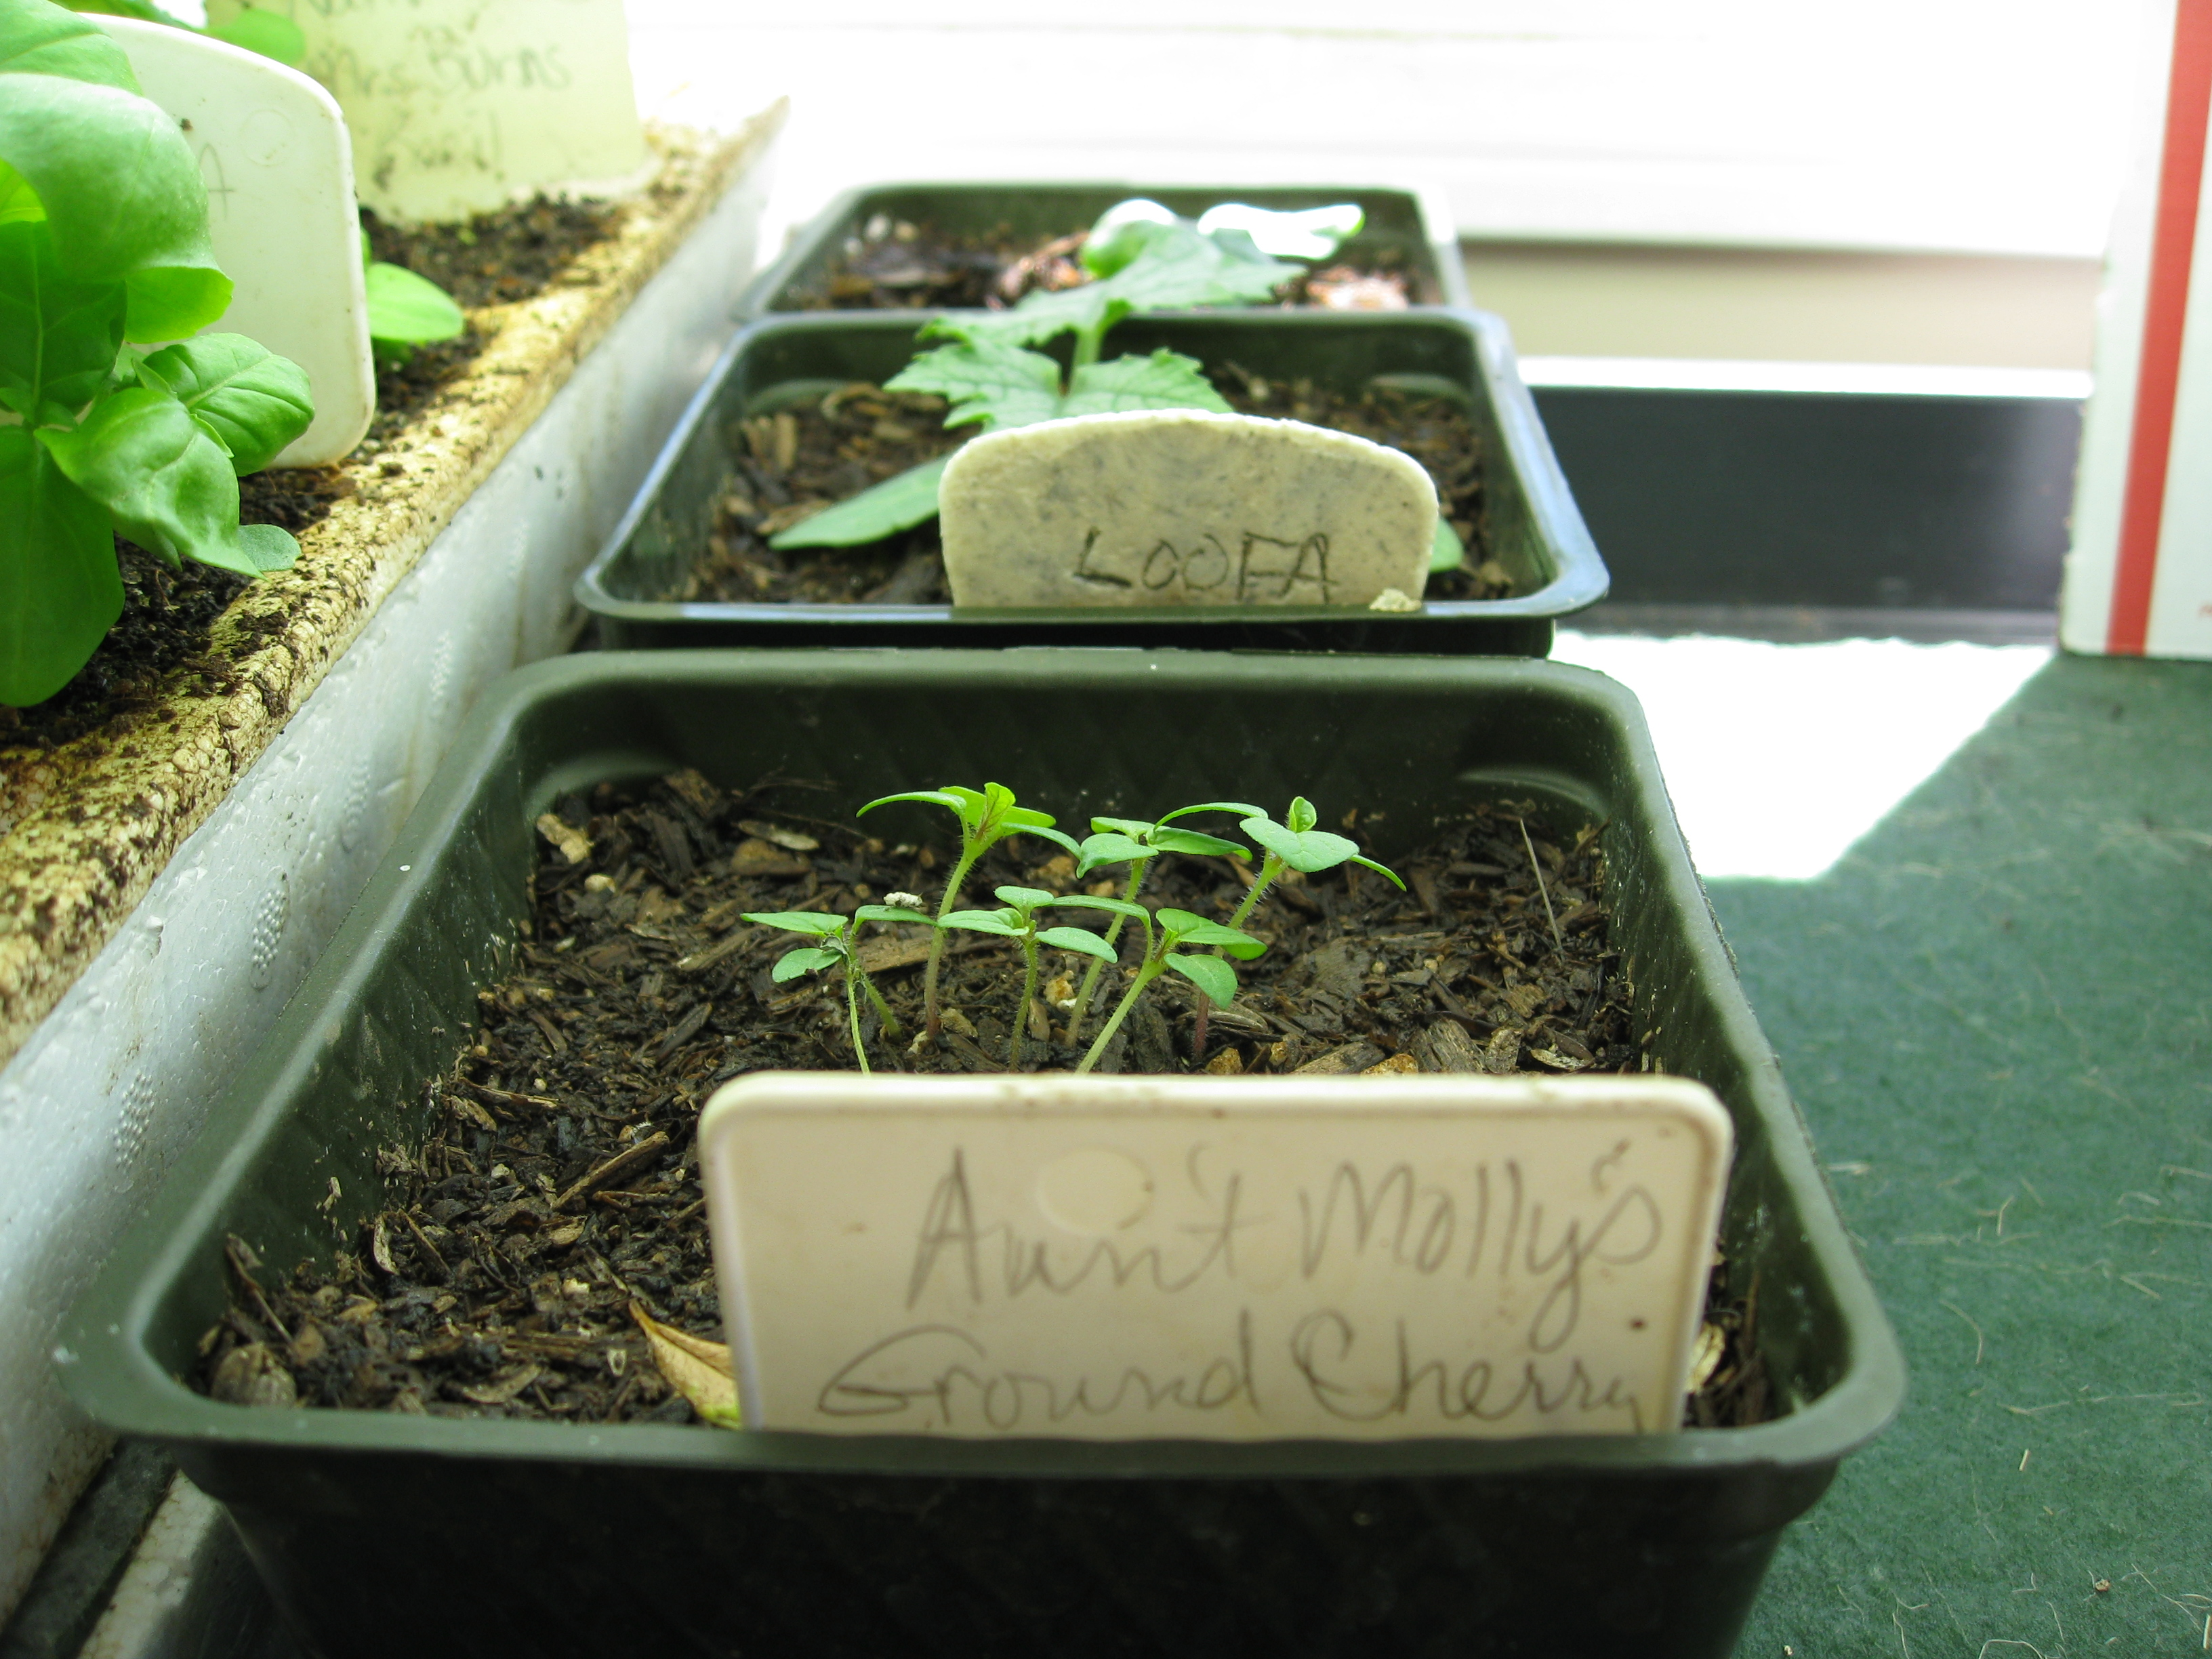 Aunt Molly's Ground Cherry sprouts